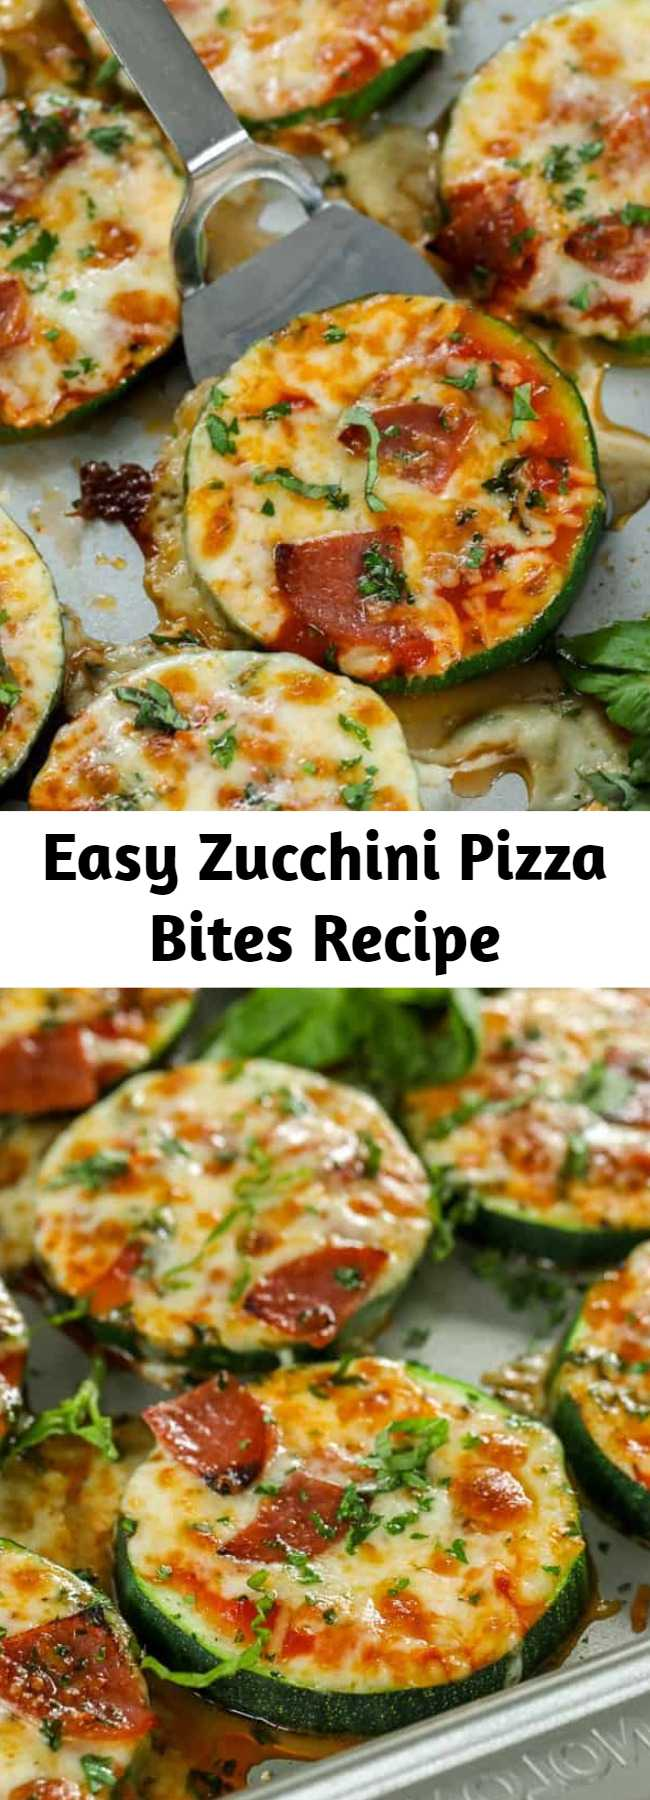 Easy Zucchini Pizza Bites Recipe - Zucchini Pizza Bites are one of our favorite snacks! These delicious pizza bites are topped with our favorite toppings and plenty of cheese for the perfect low carb pizza fix! #keto #zucchini #zucchinipizzabites #zucchinipizza #pizzabites